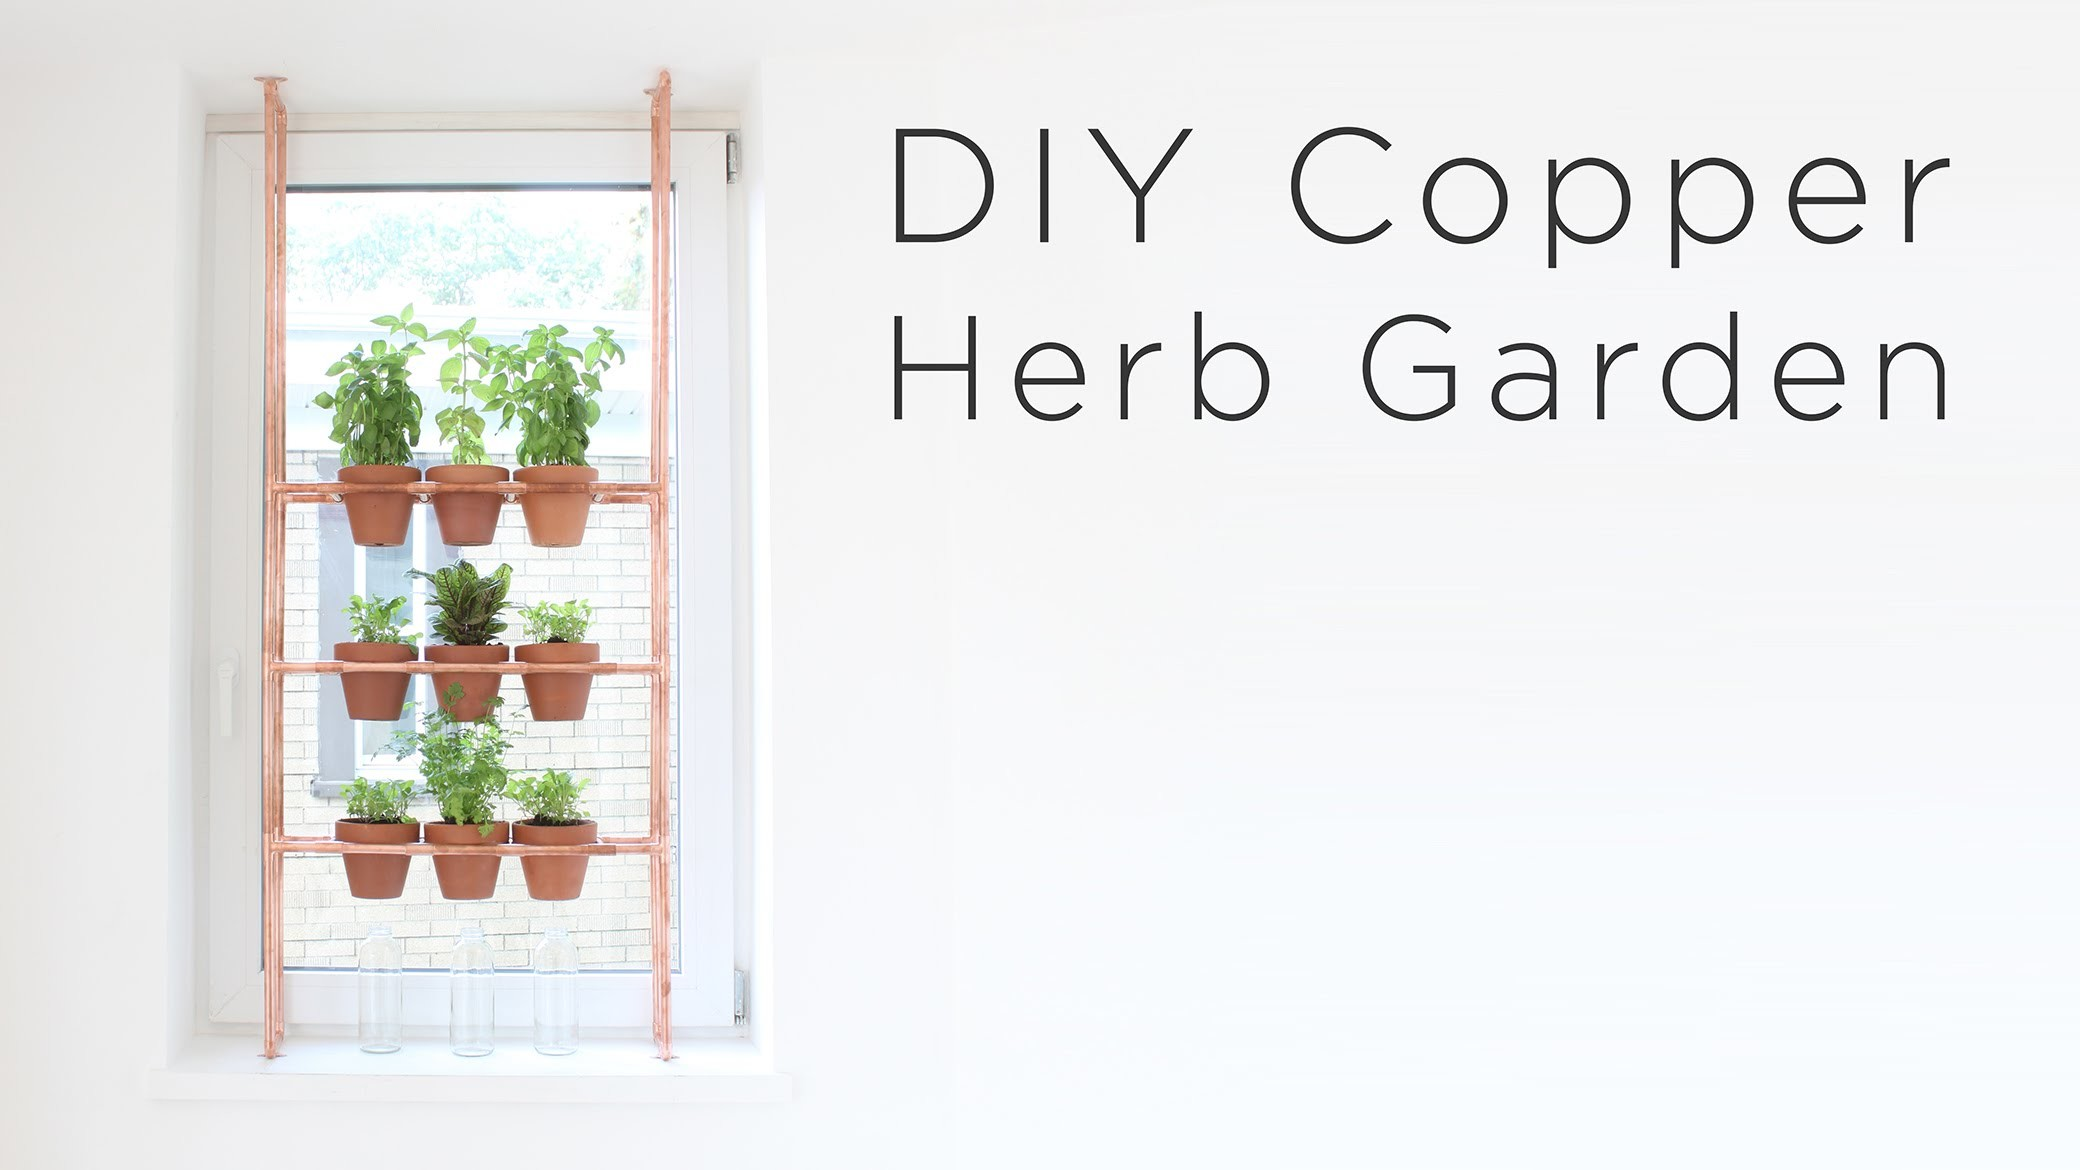 DIY Copper Herb Garden